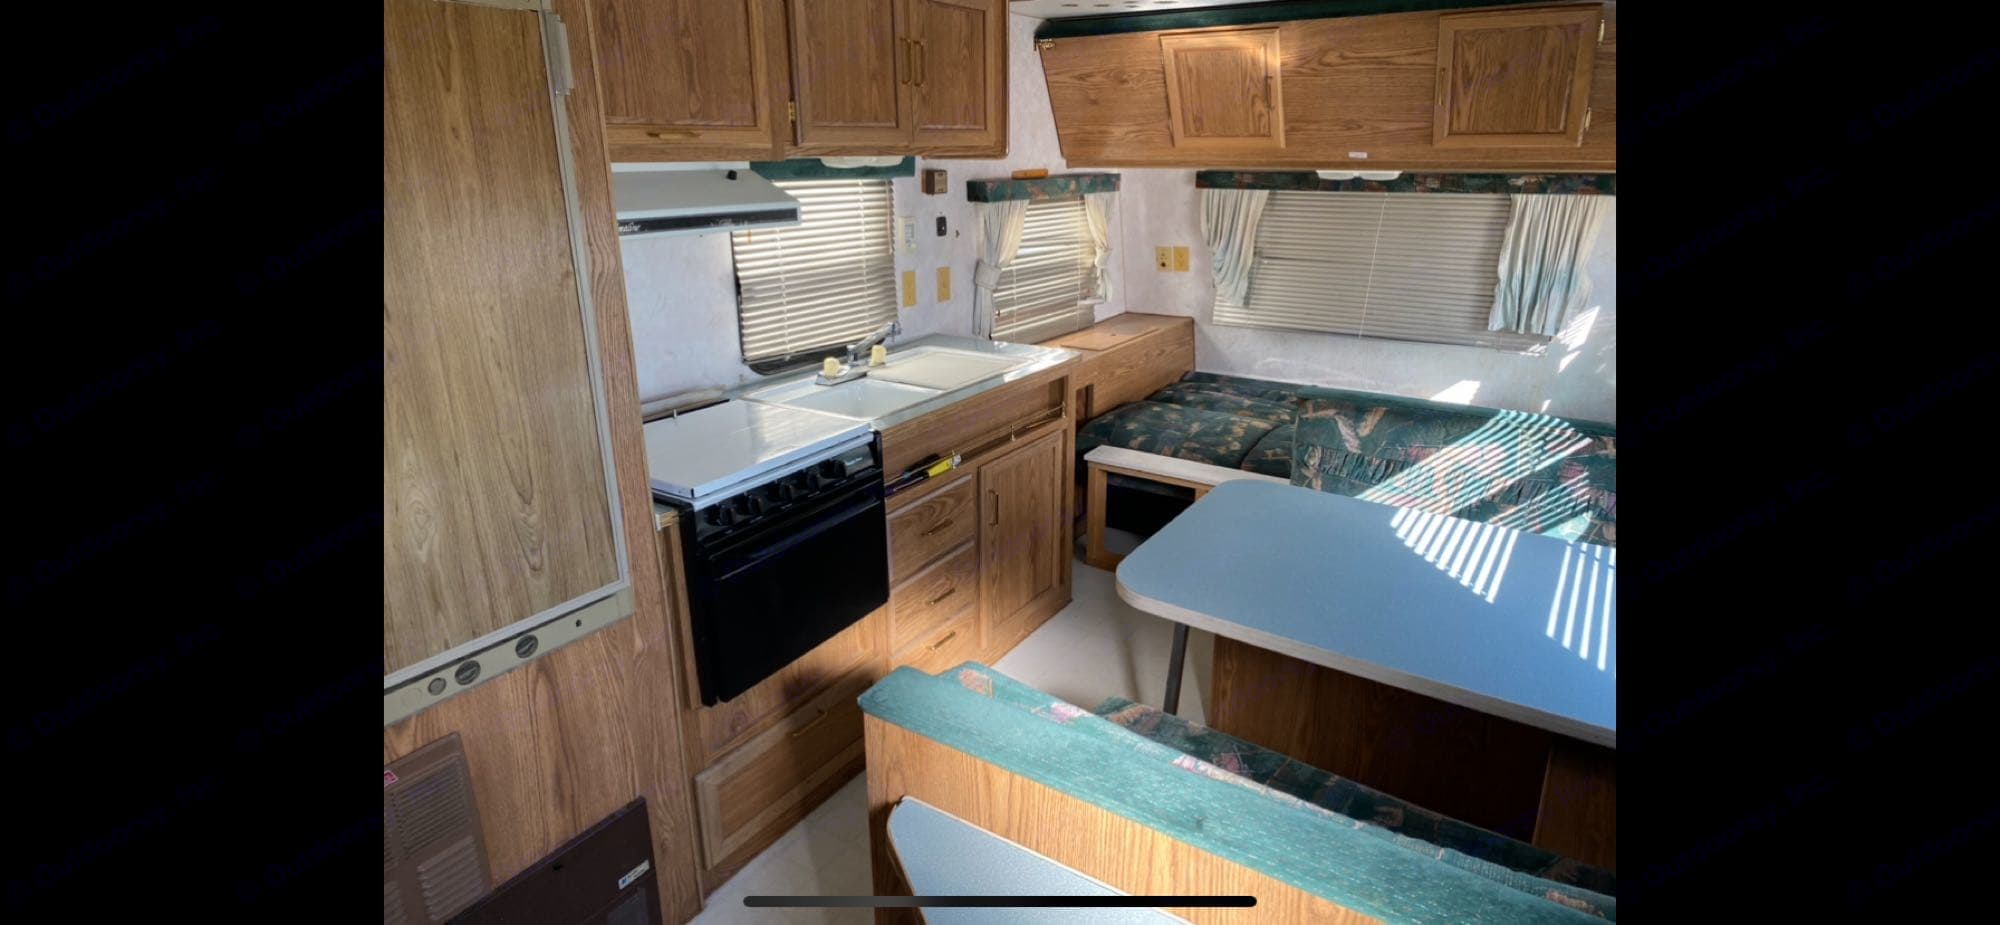 kitchen, dining areas. Fleetwood Prowler 1993